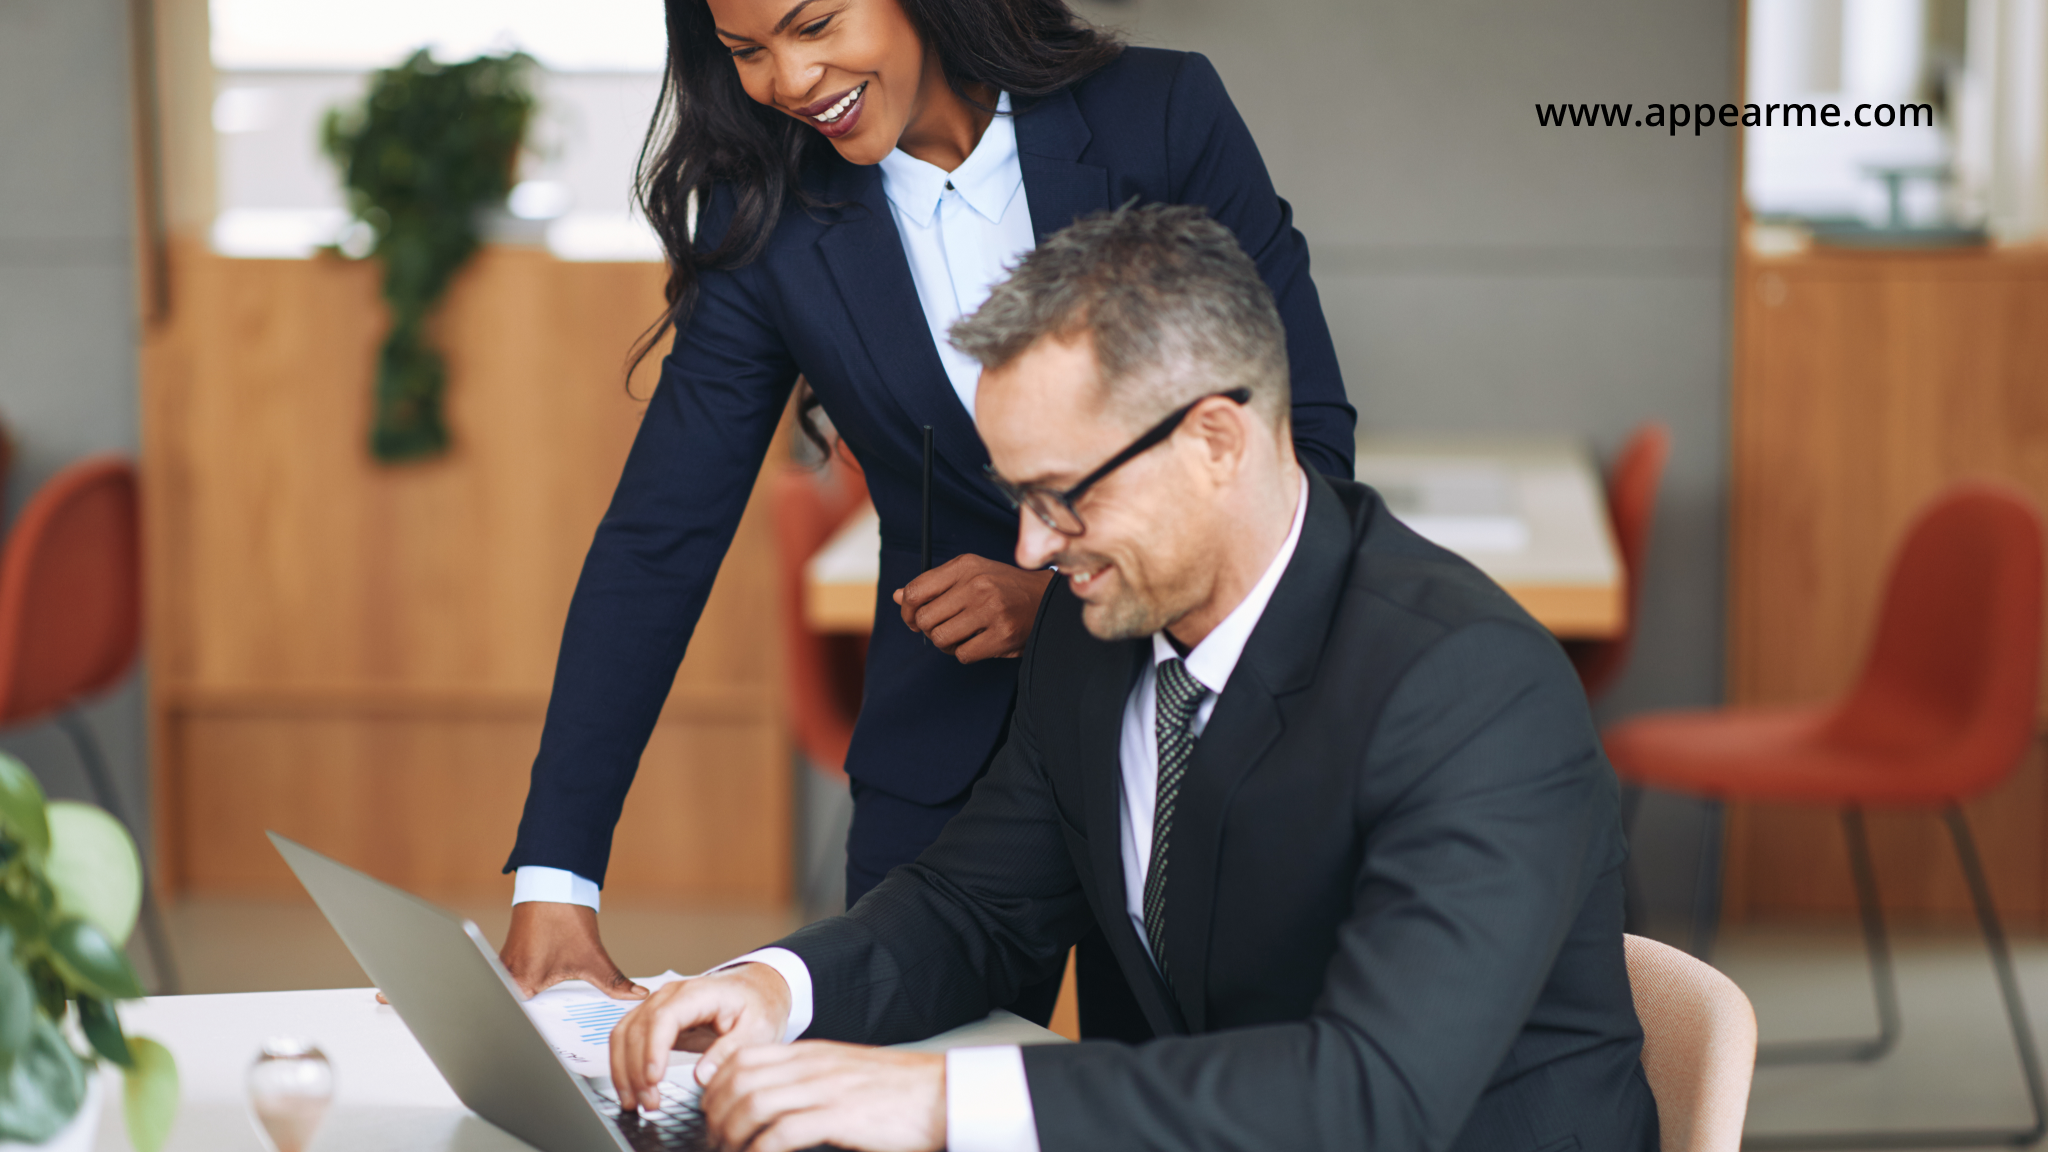 Deposition Attorneys. Find Coverage Within Minutes   AppearMe